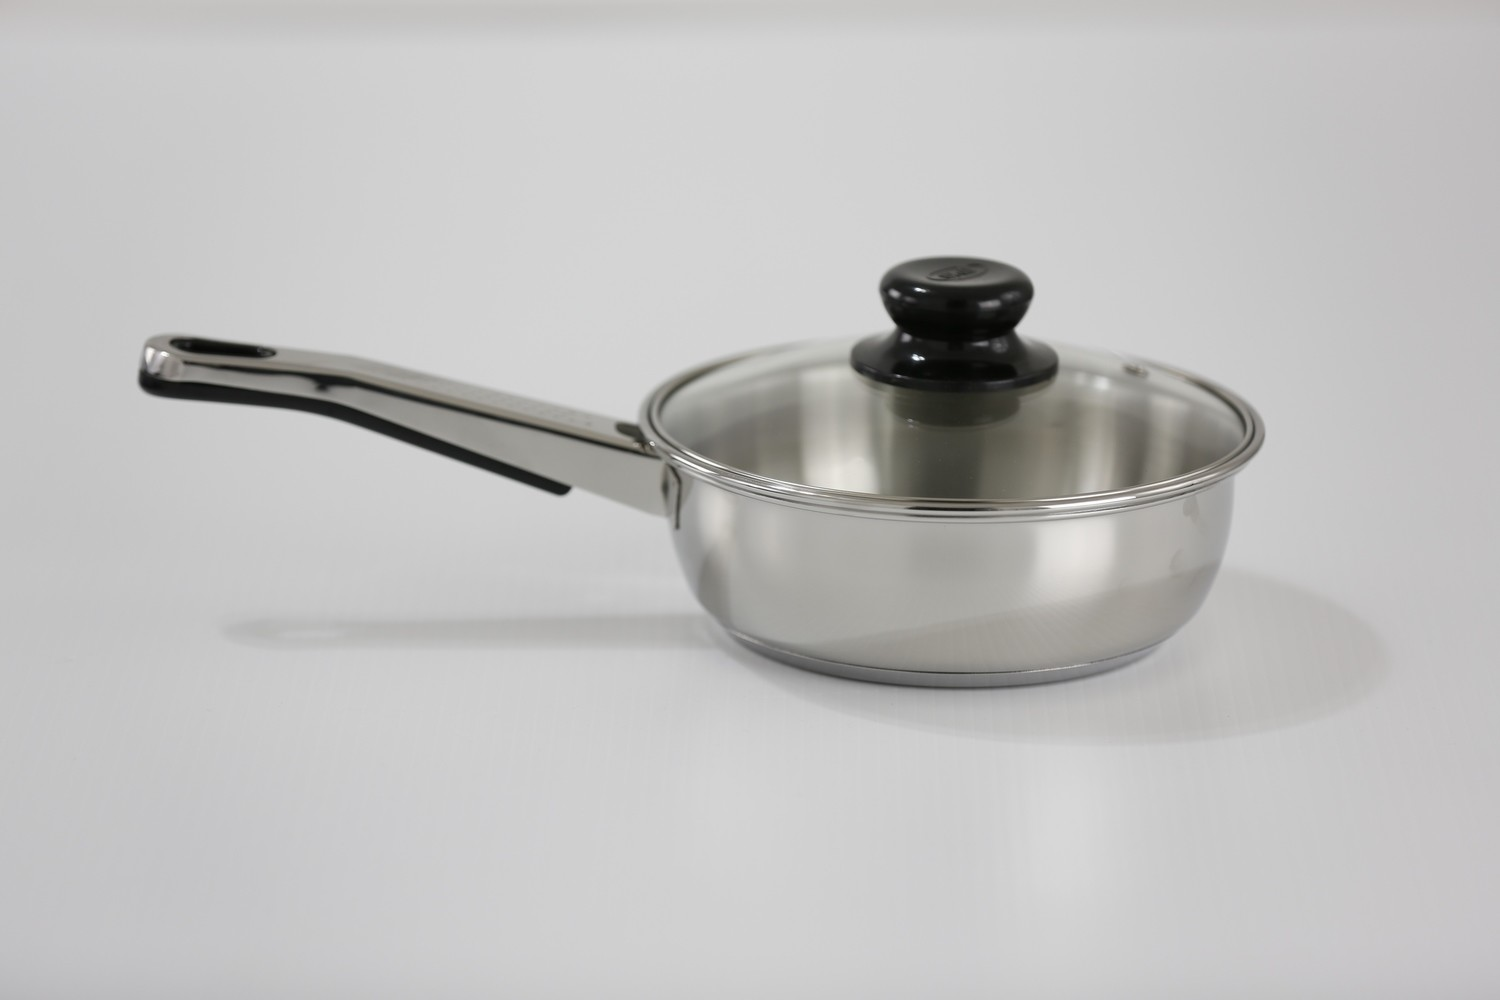 """SS1 - 8.66"""" Stainless Steel Fry Pan with Glass Lid"""